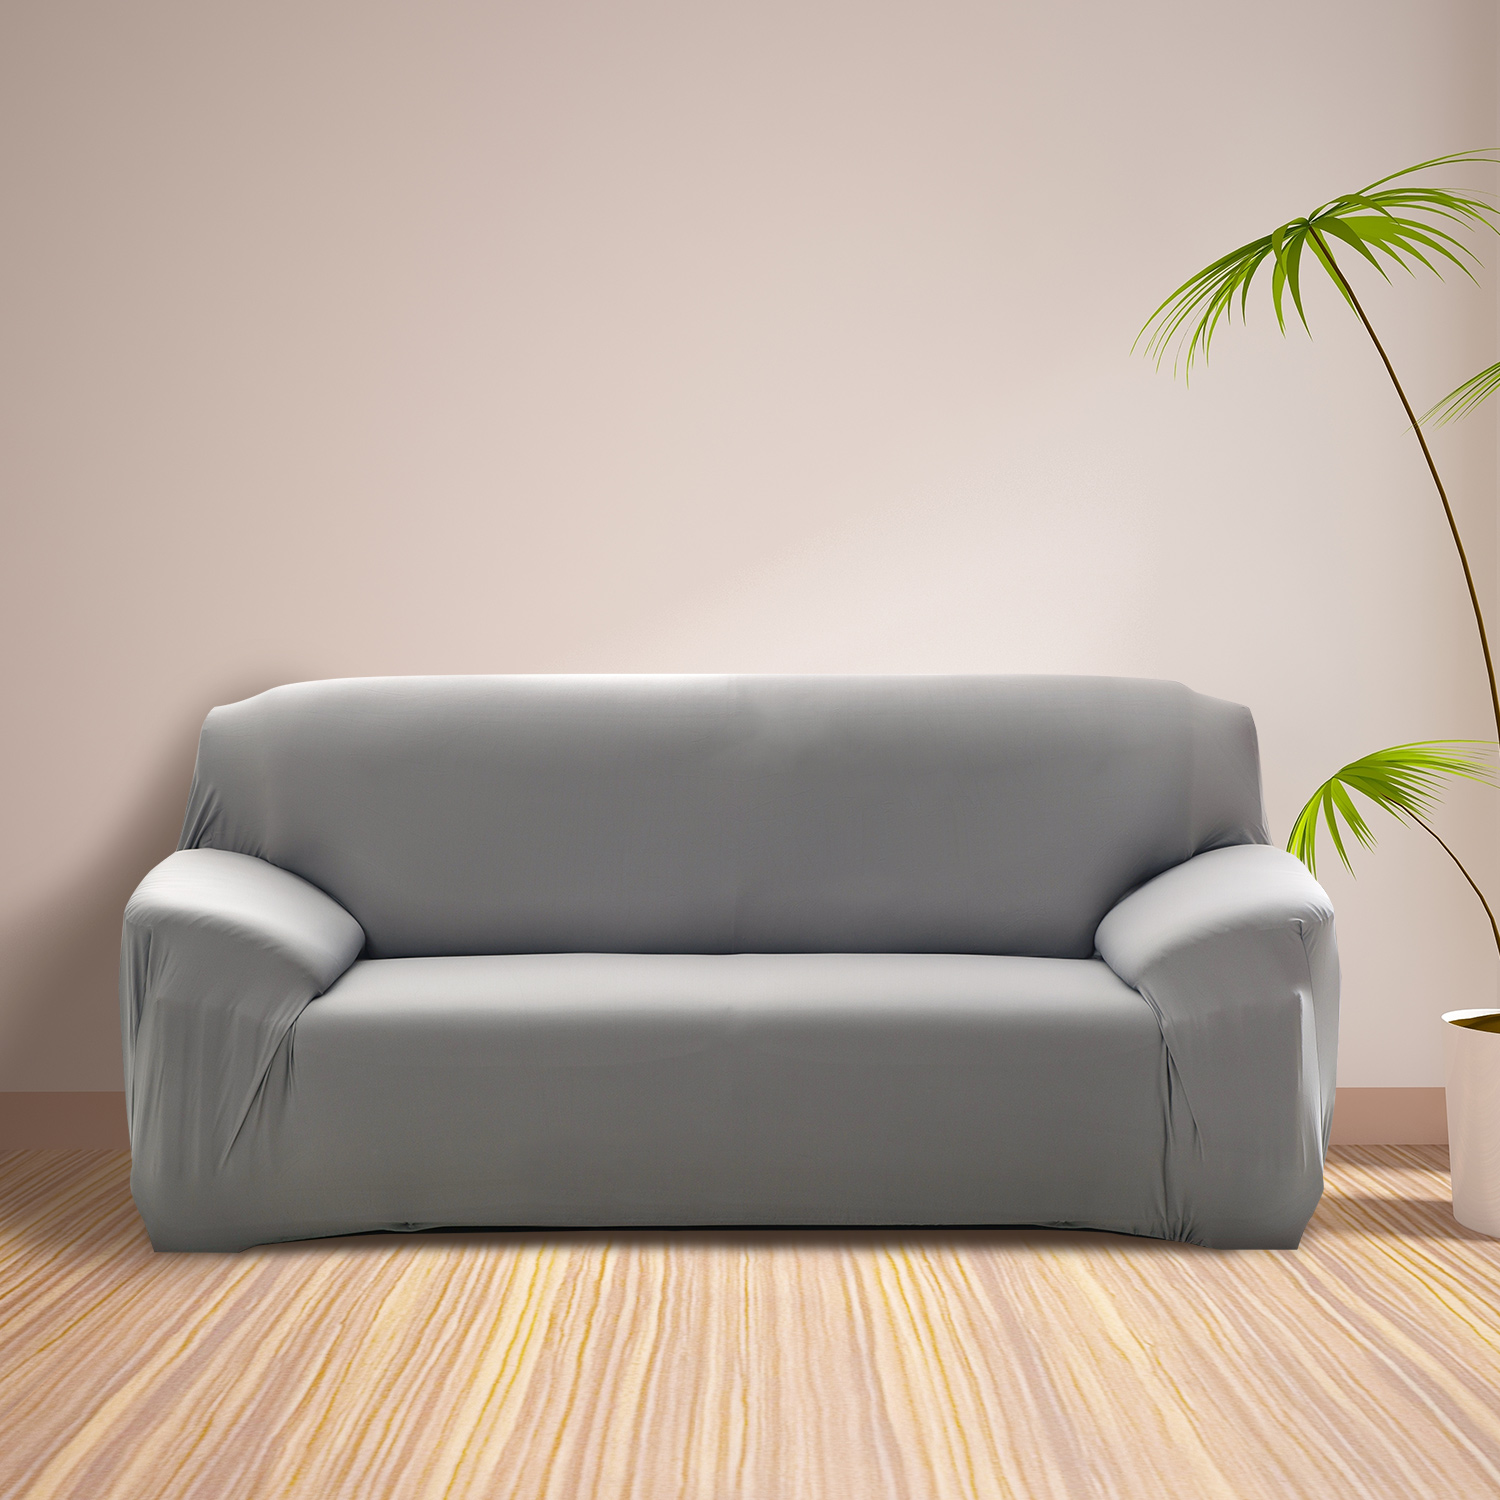 TKOOFN Stretch Four Seaters Elastic Sofa Cover Loveseat Couch Furniture Slipcover